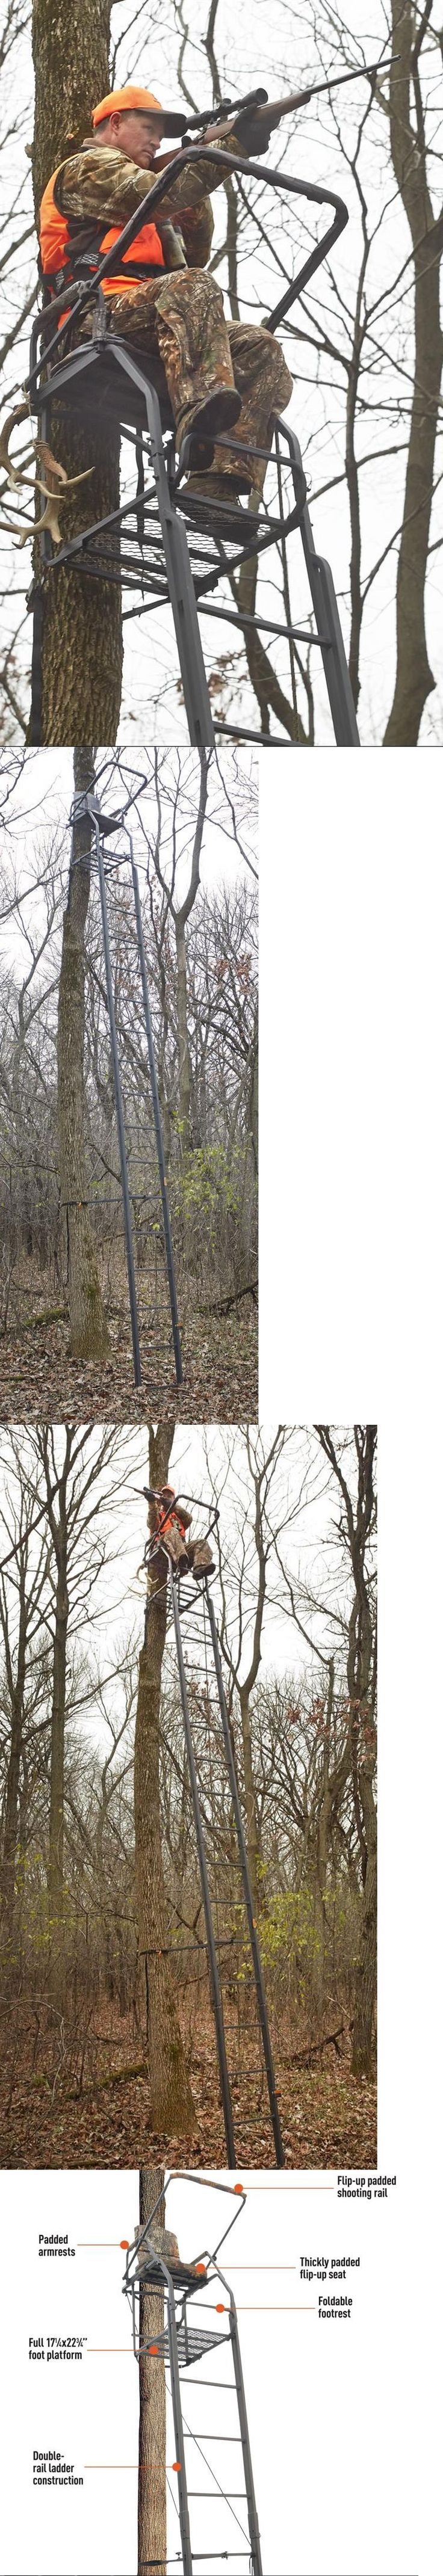 Tree Stands 52508: 21 Ladder Tree Stand Hunting Huge Xl Rifle Bow Deer Archery Camo Hunting Foot -> BUY IT NOW ONLY: $187.56 on eBay!